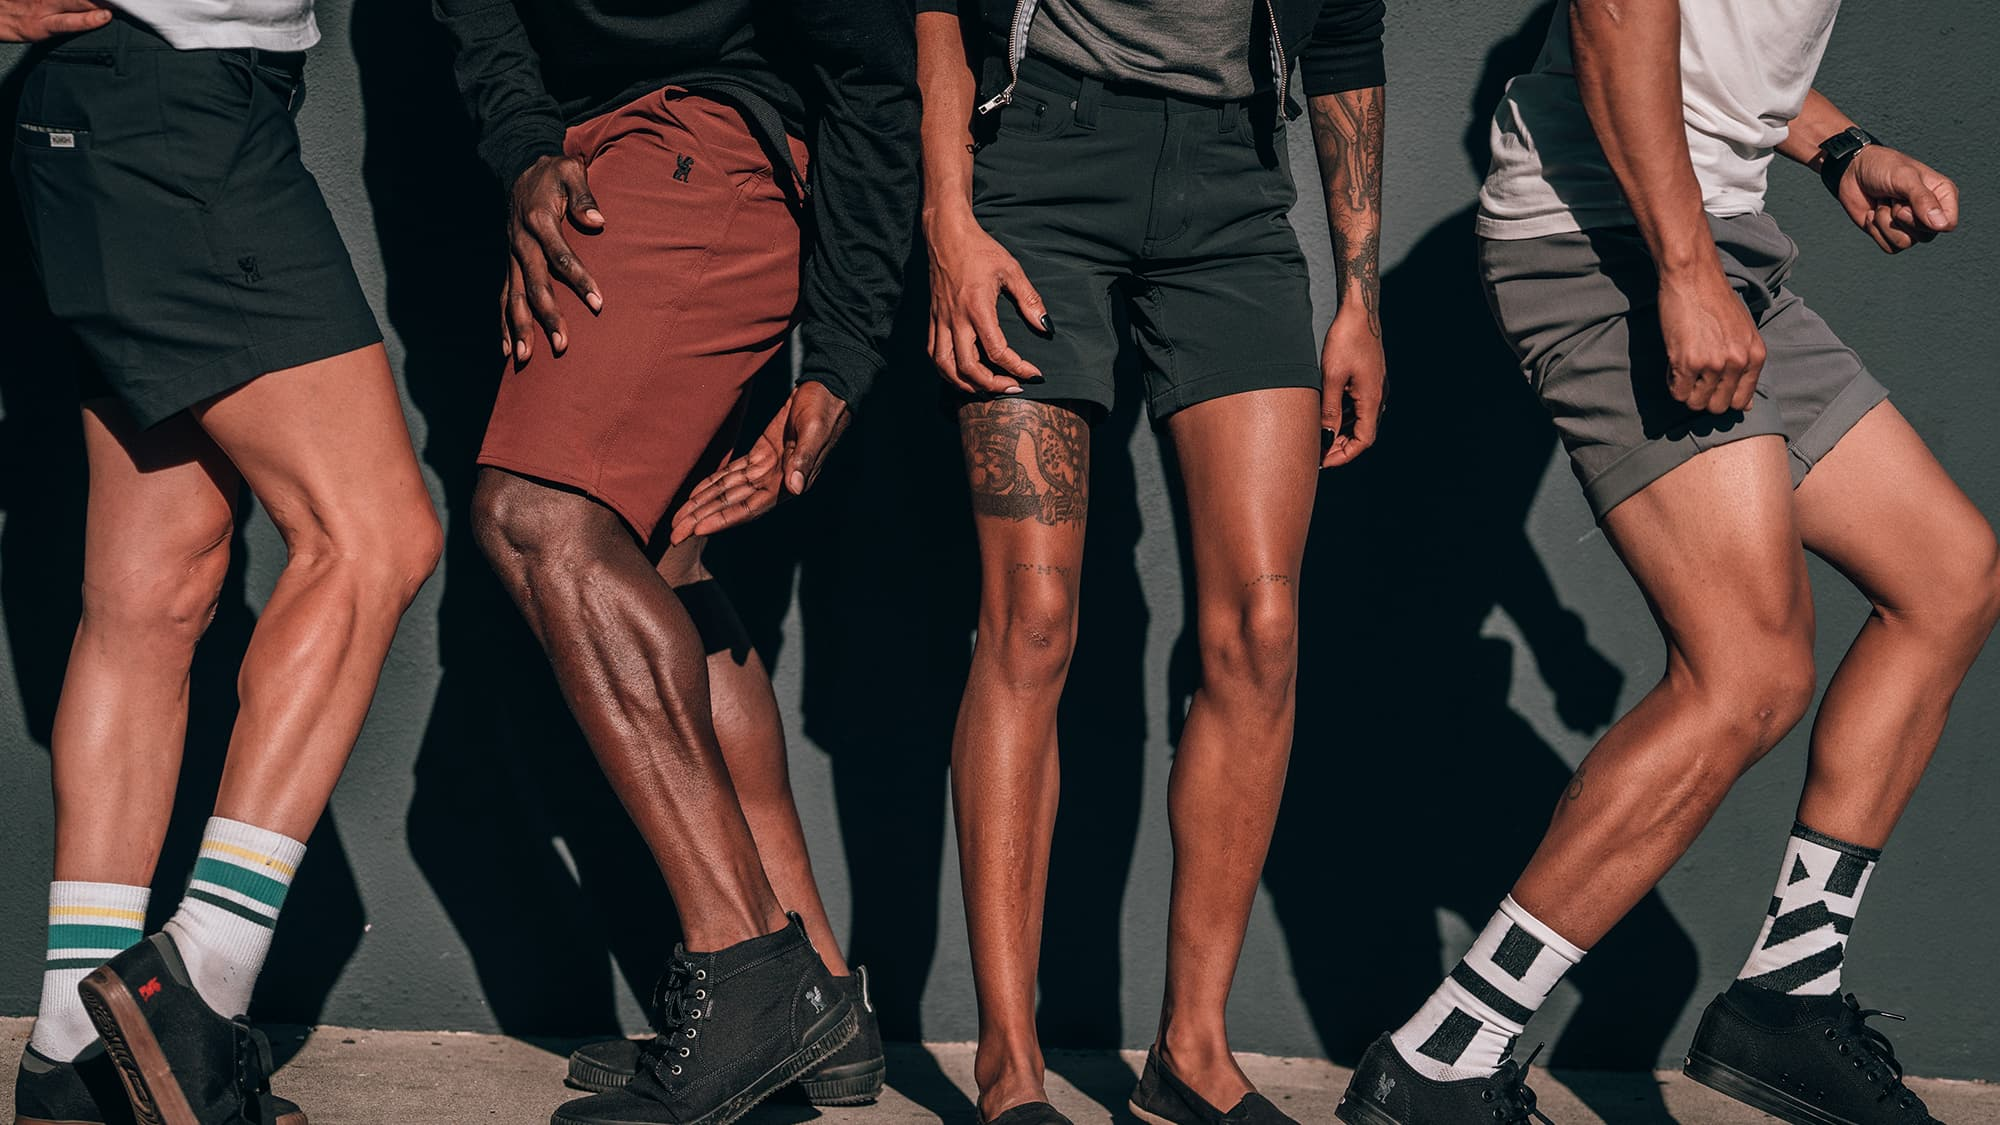 Chrome shorts worn by various people